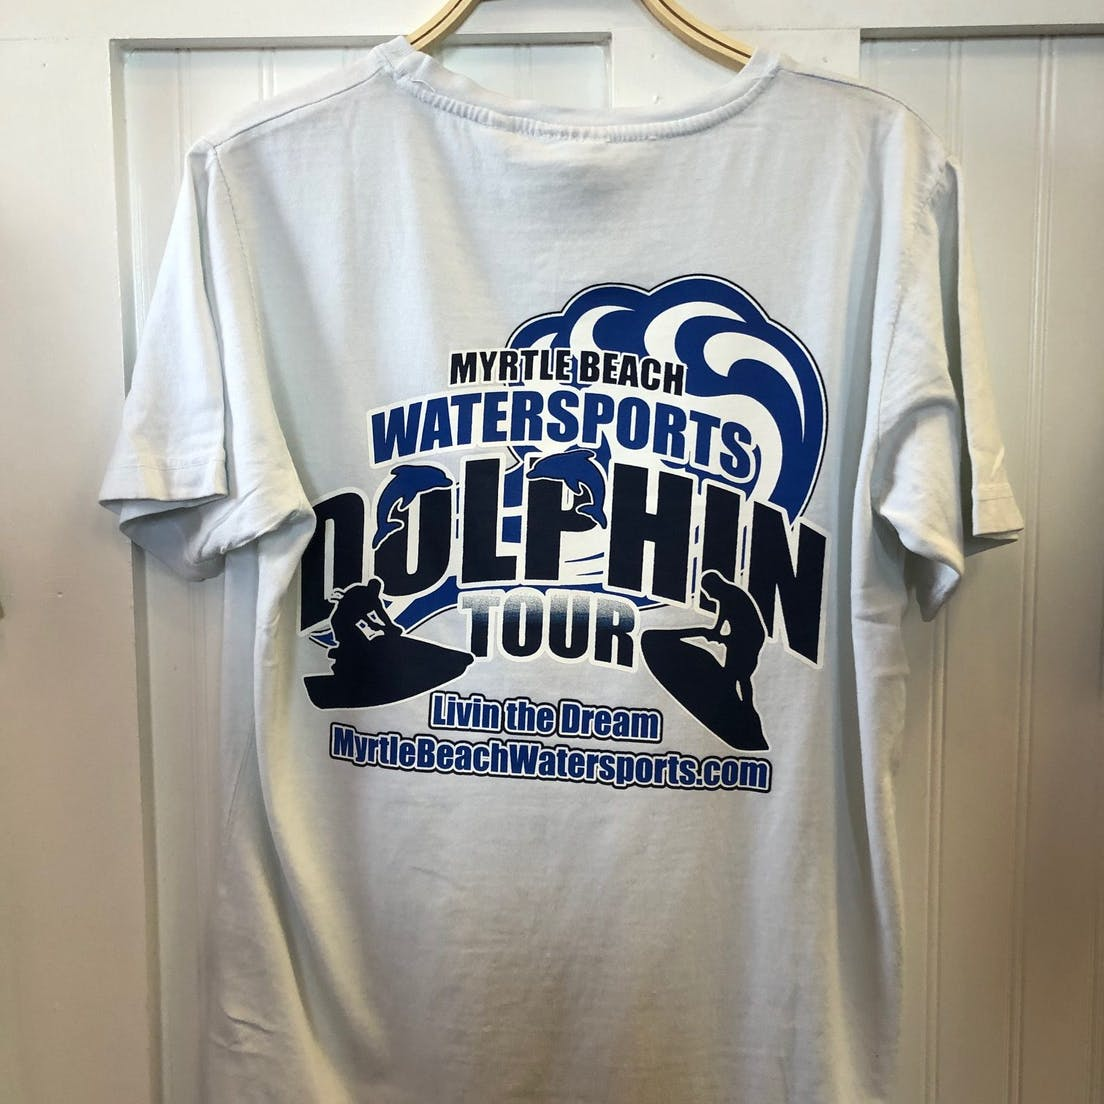 white dolphin tour shirt back